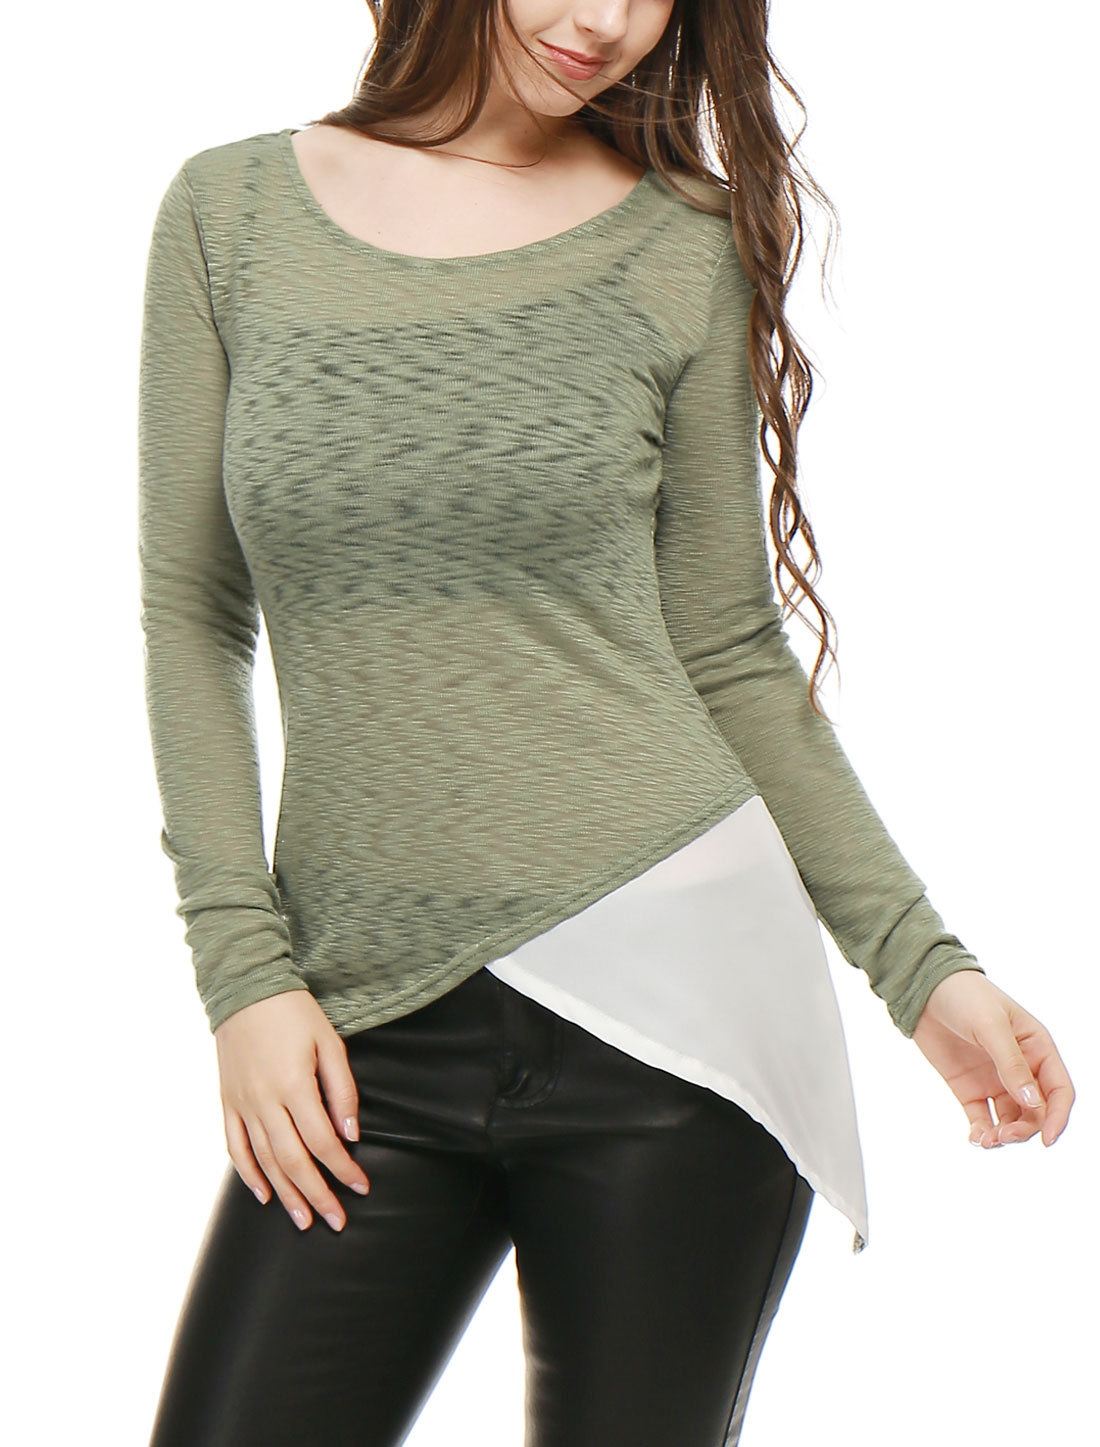 Women Asymmetric Hem Chiffon Panel Sheer Tunic Knit Top Green L